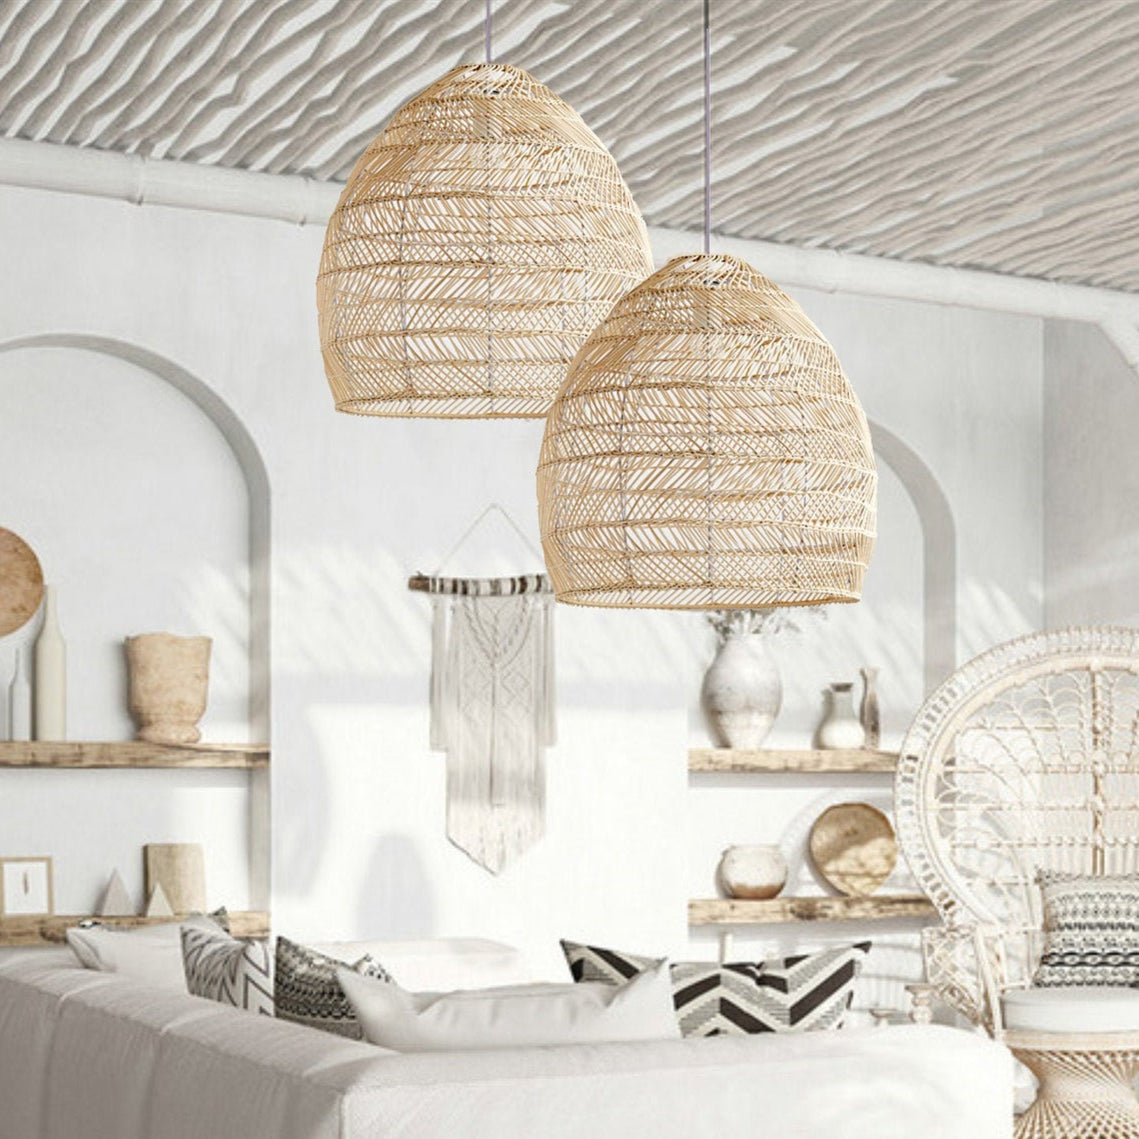 Design Basket Rattan Woven Pendant Light Shades